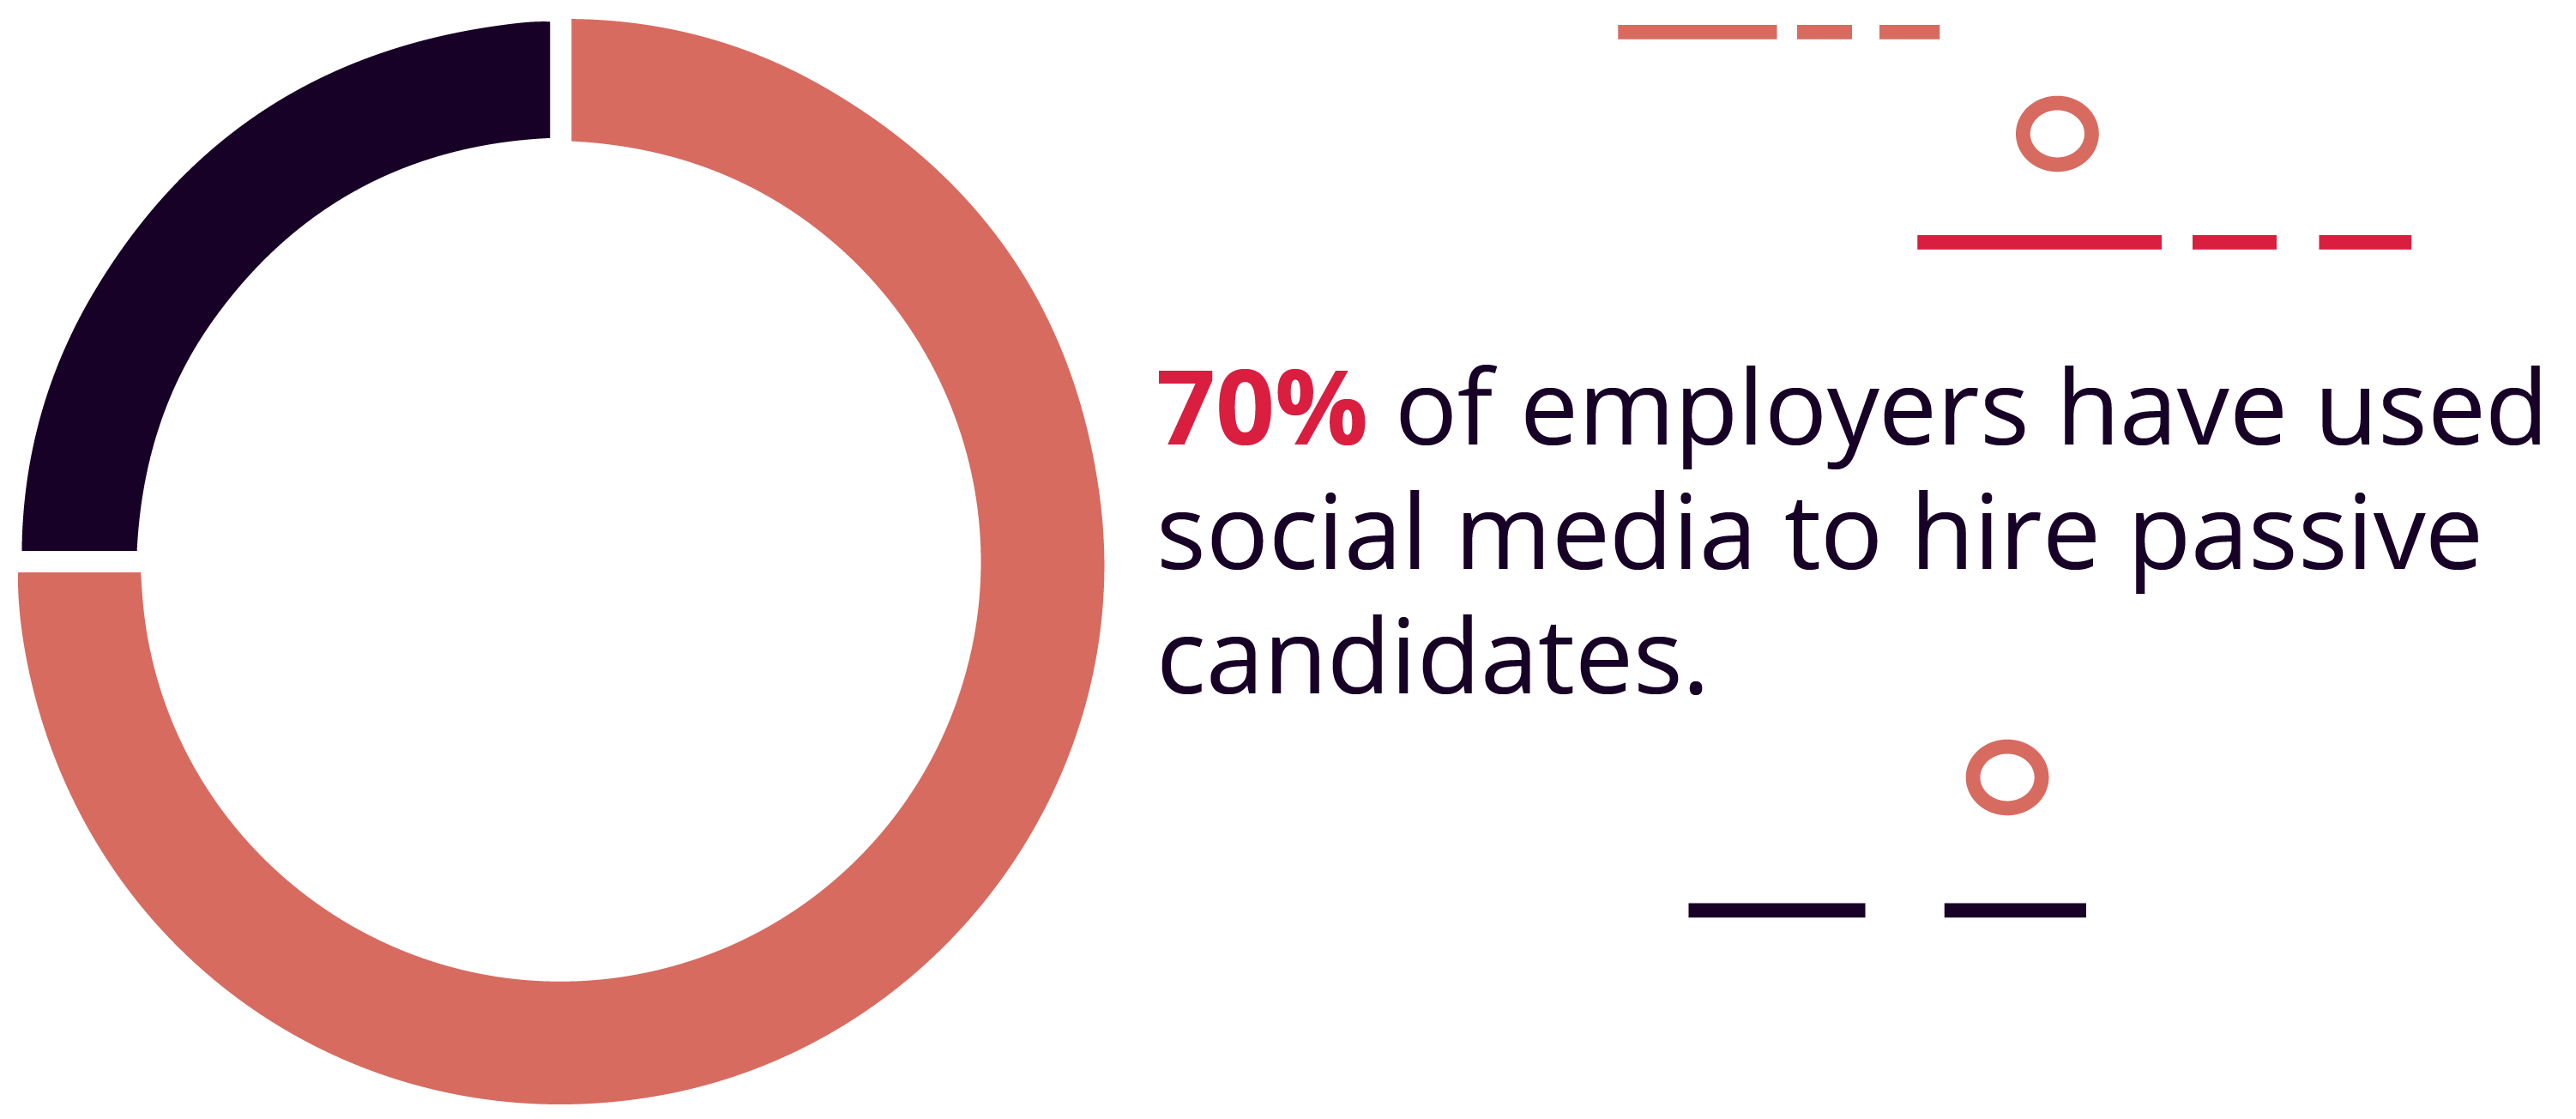 Social media has helped 70% of employers find passive candidates